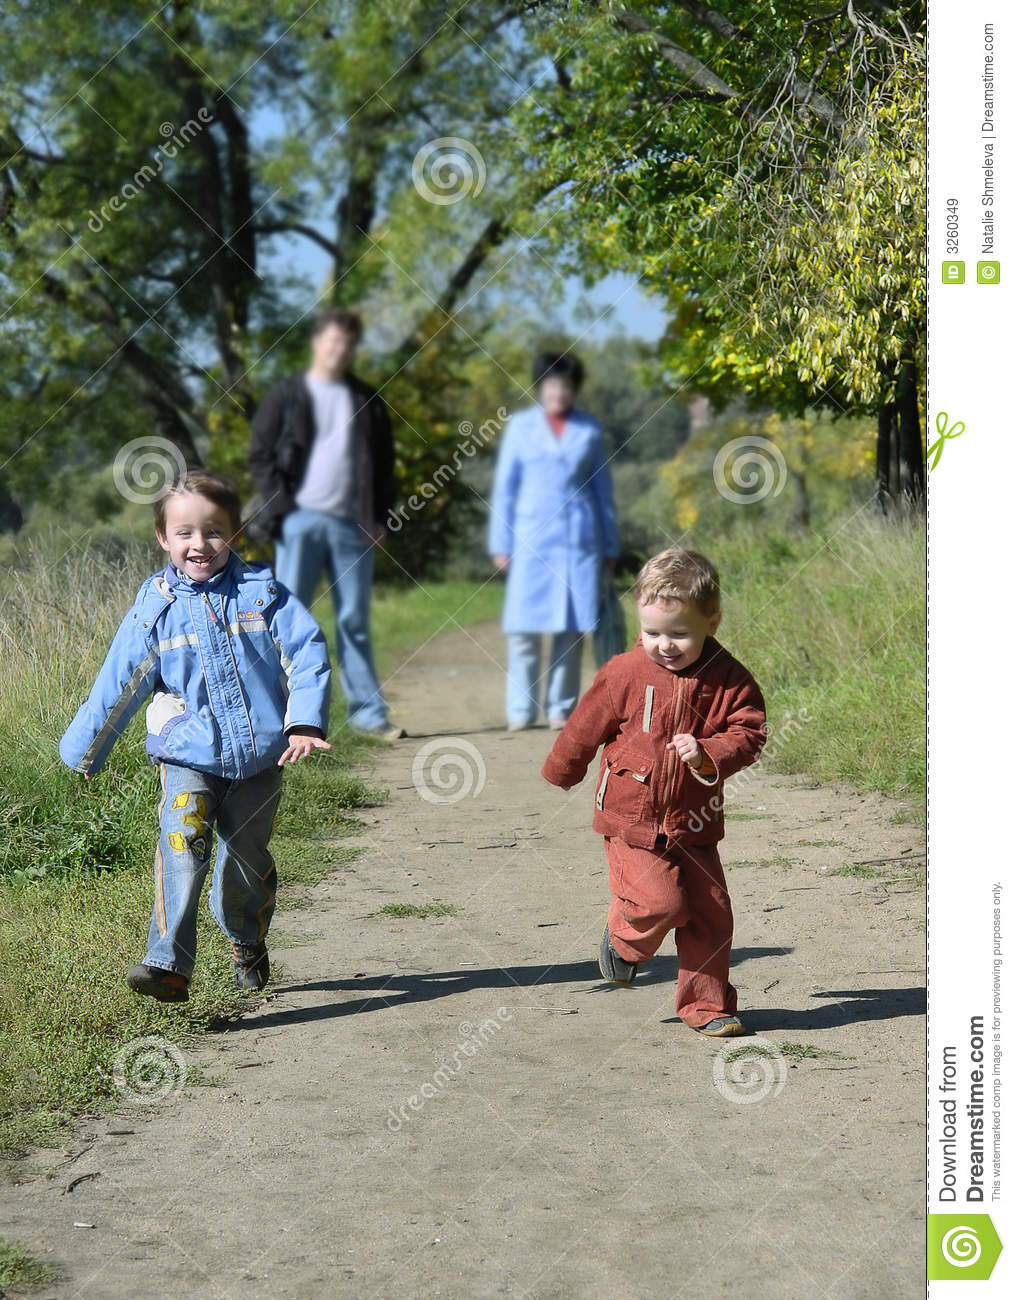 Two little boys running stock image. Image of color, colorful - 3260349